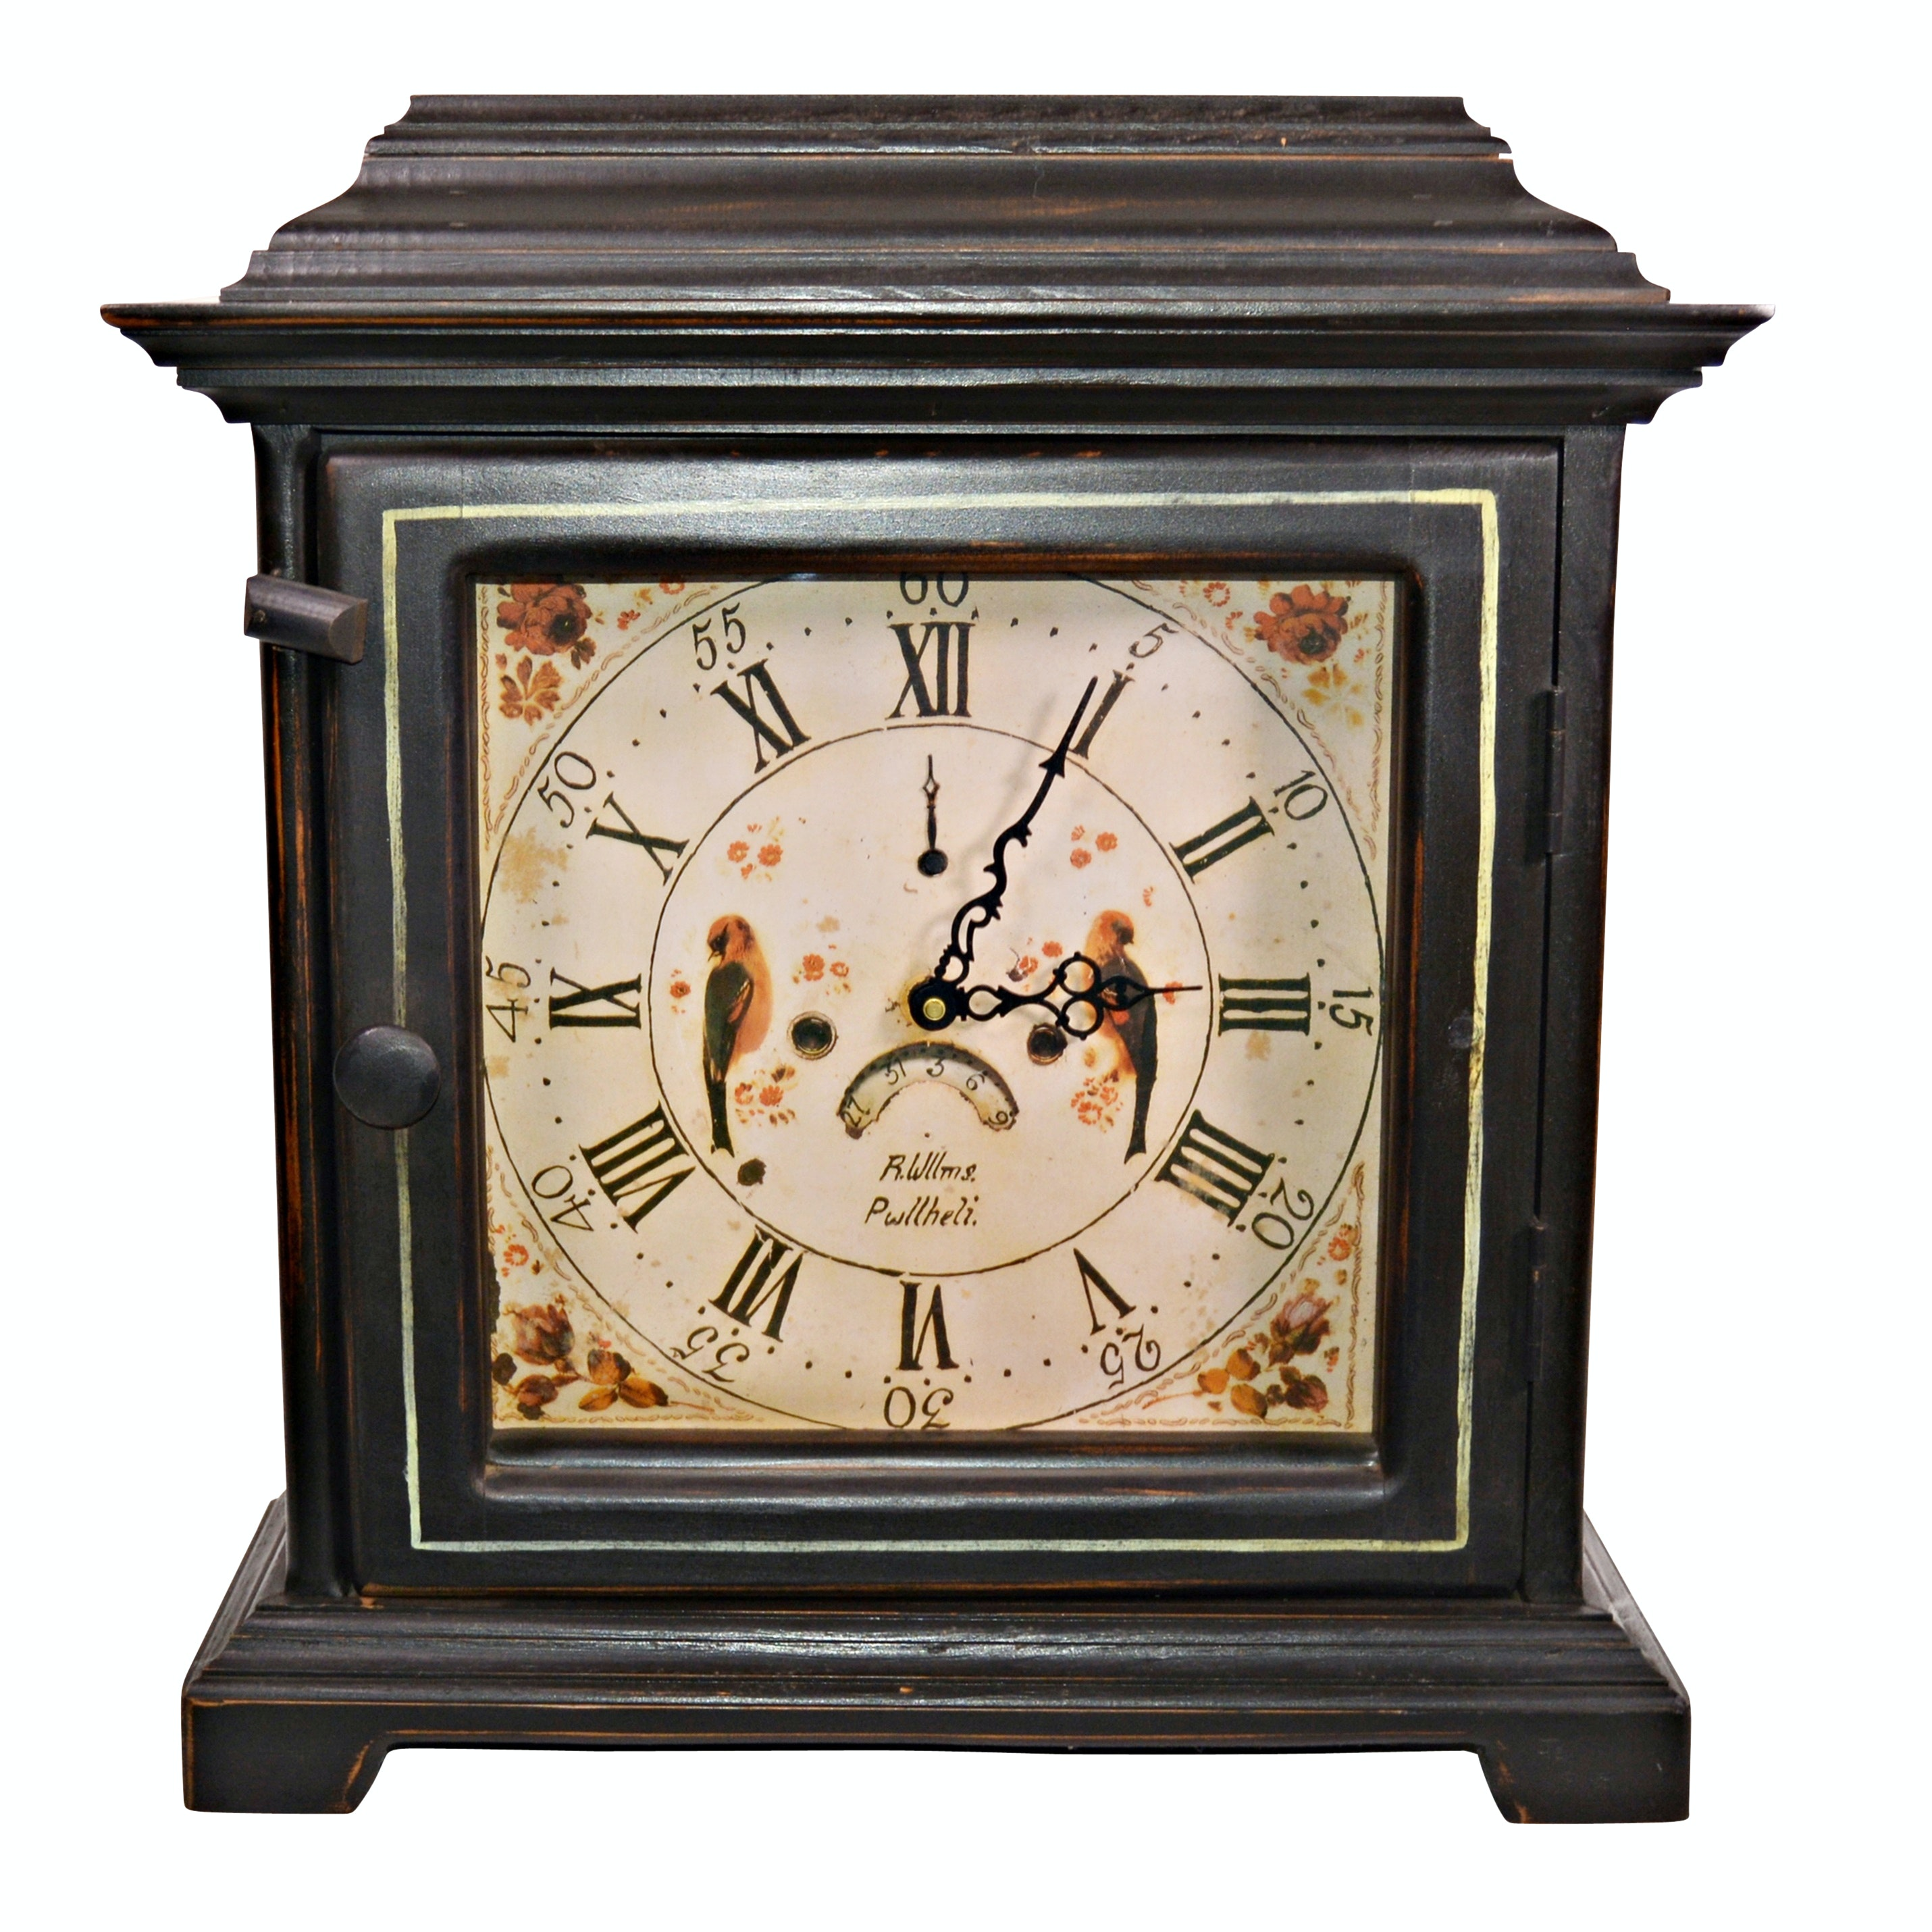 Reproduction Clock Face R.Willms. Pwllheli Quartz Mantel Clock